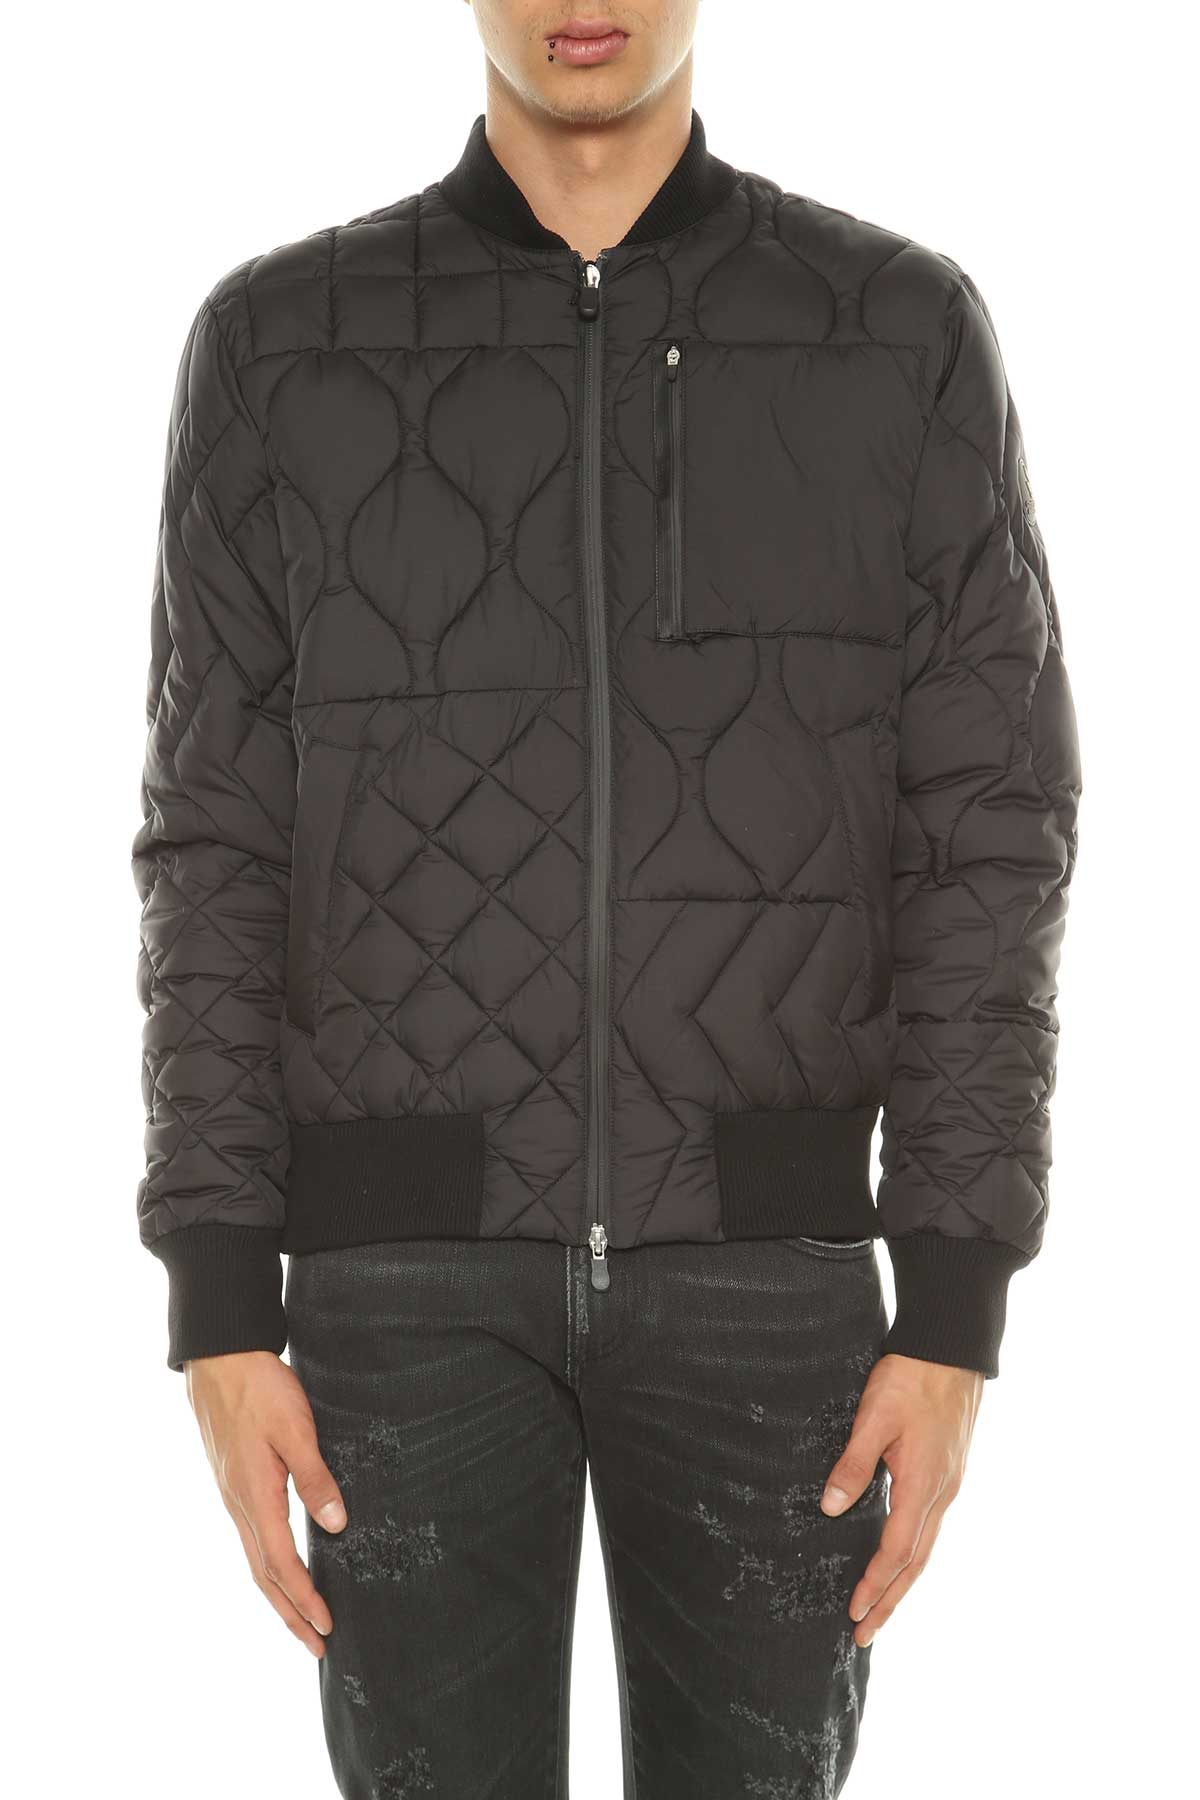 Christopher Raeburn Christopher Raeburn Quilted Bomber Jacket